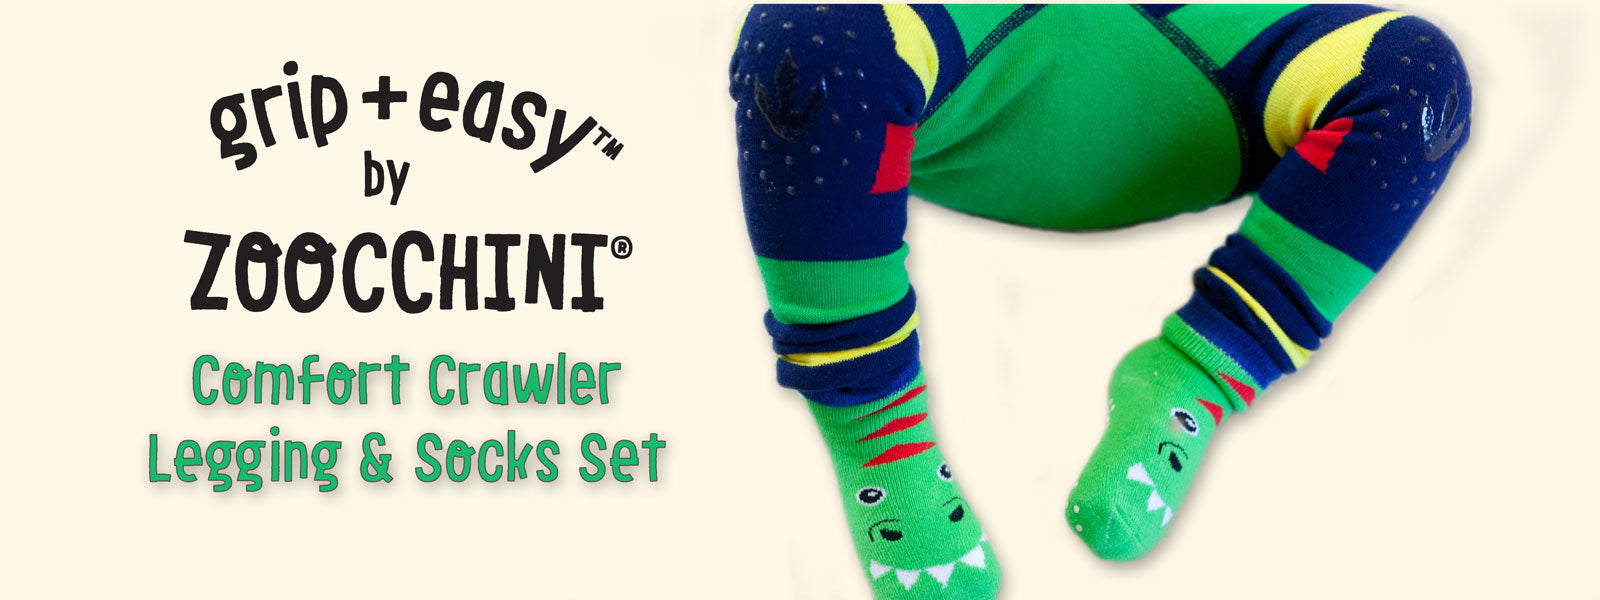 ZOOCCHINI grip+easy crawler leggings